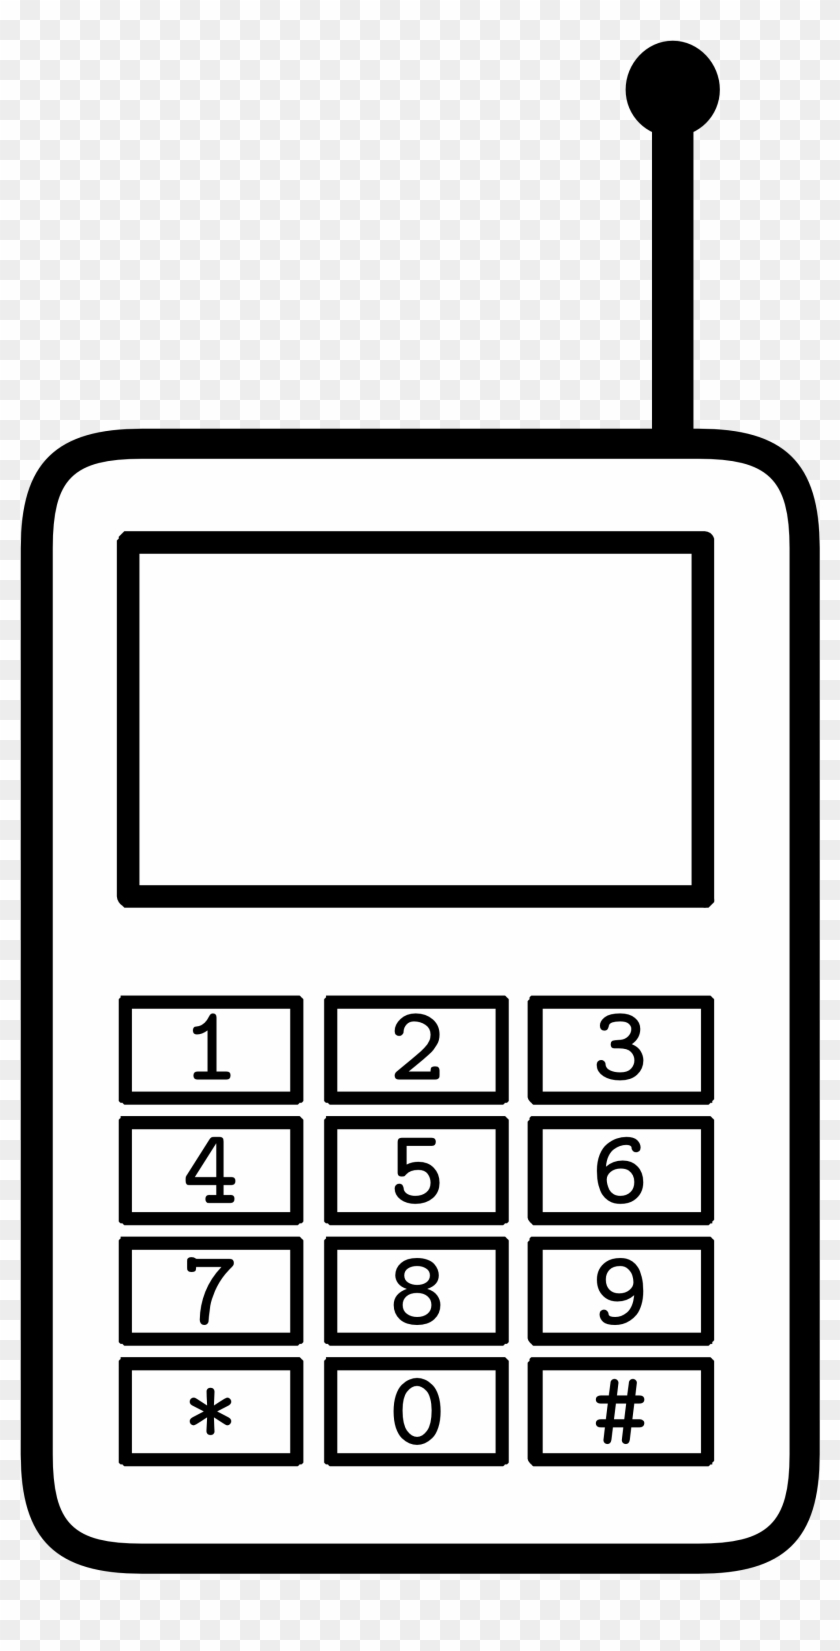 Clipart Handphone Phone Black And White Clipart Free Transparent